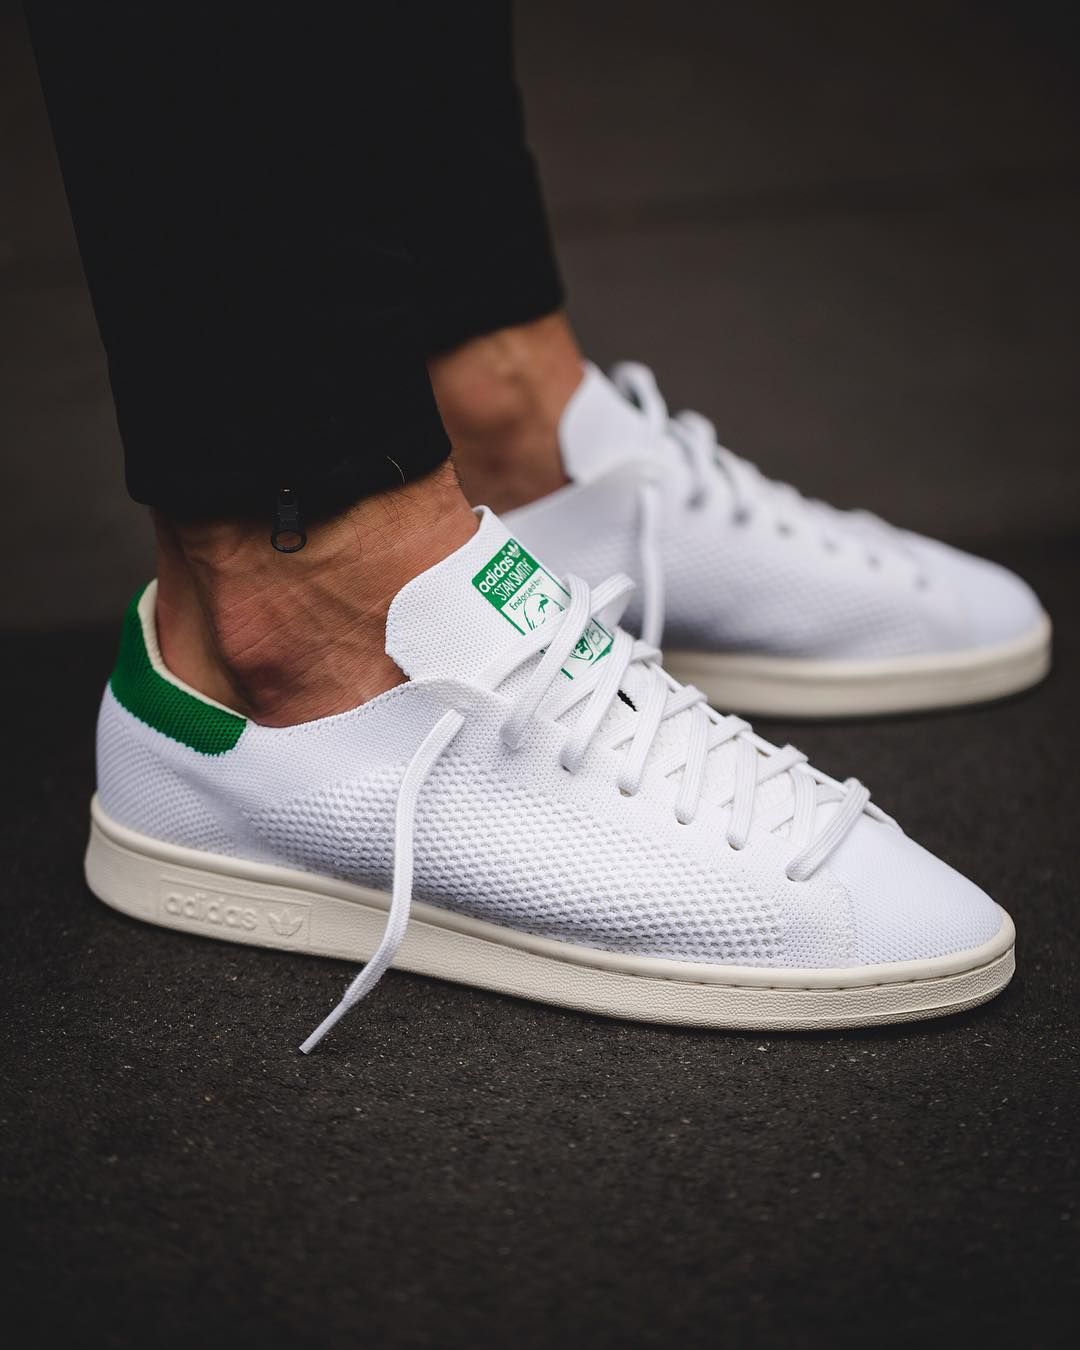 adidas stan smith primeknit green follow filetlondon. Black Bedroom Furniture Sets. Home Design Ideas